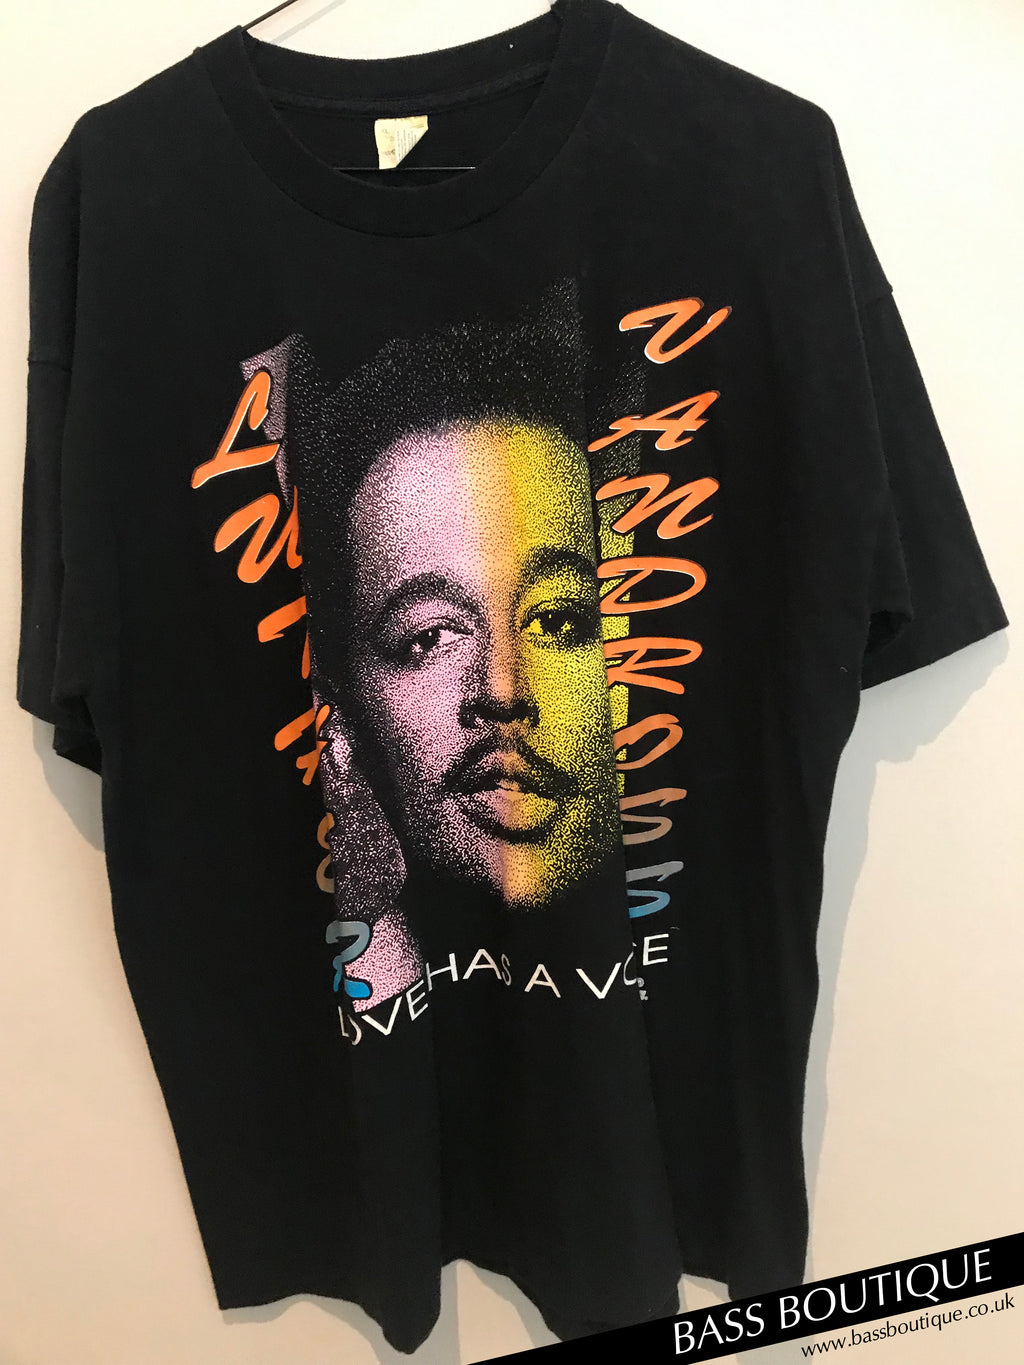 Luther Vandross 'Love Has a Voice' Vintage T-Shirt (XL)